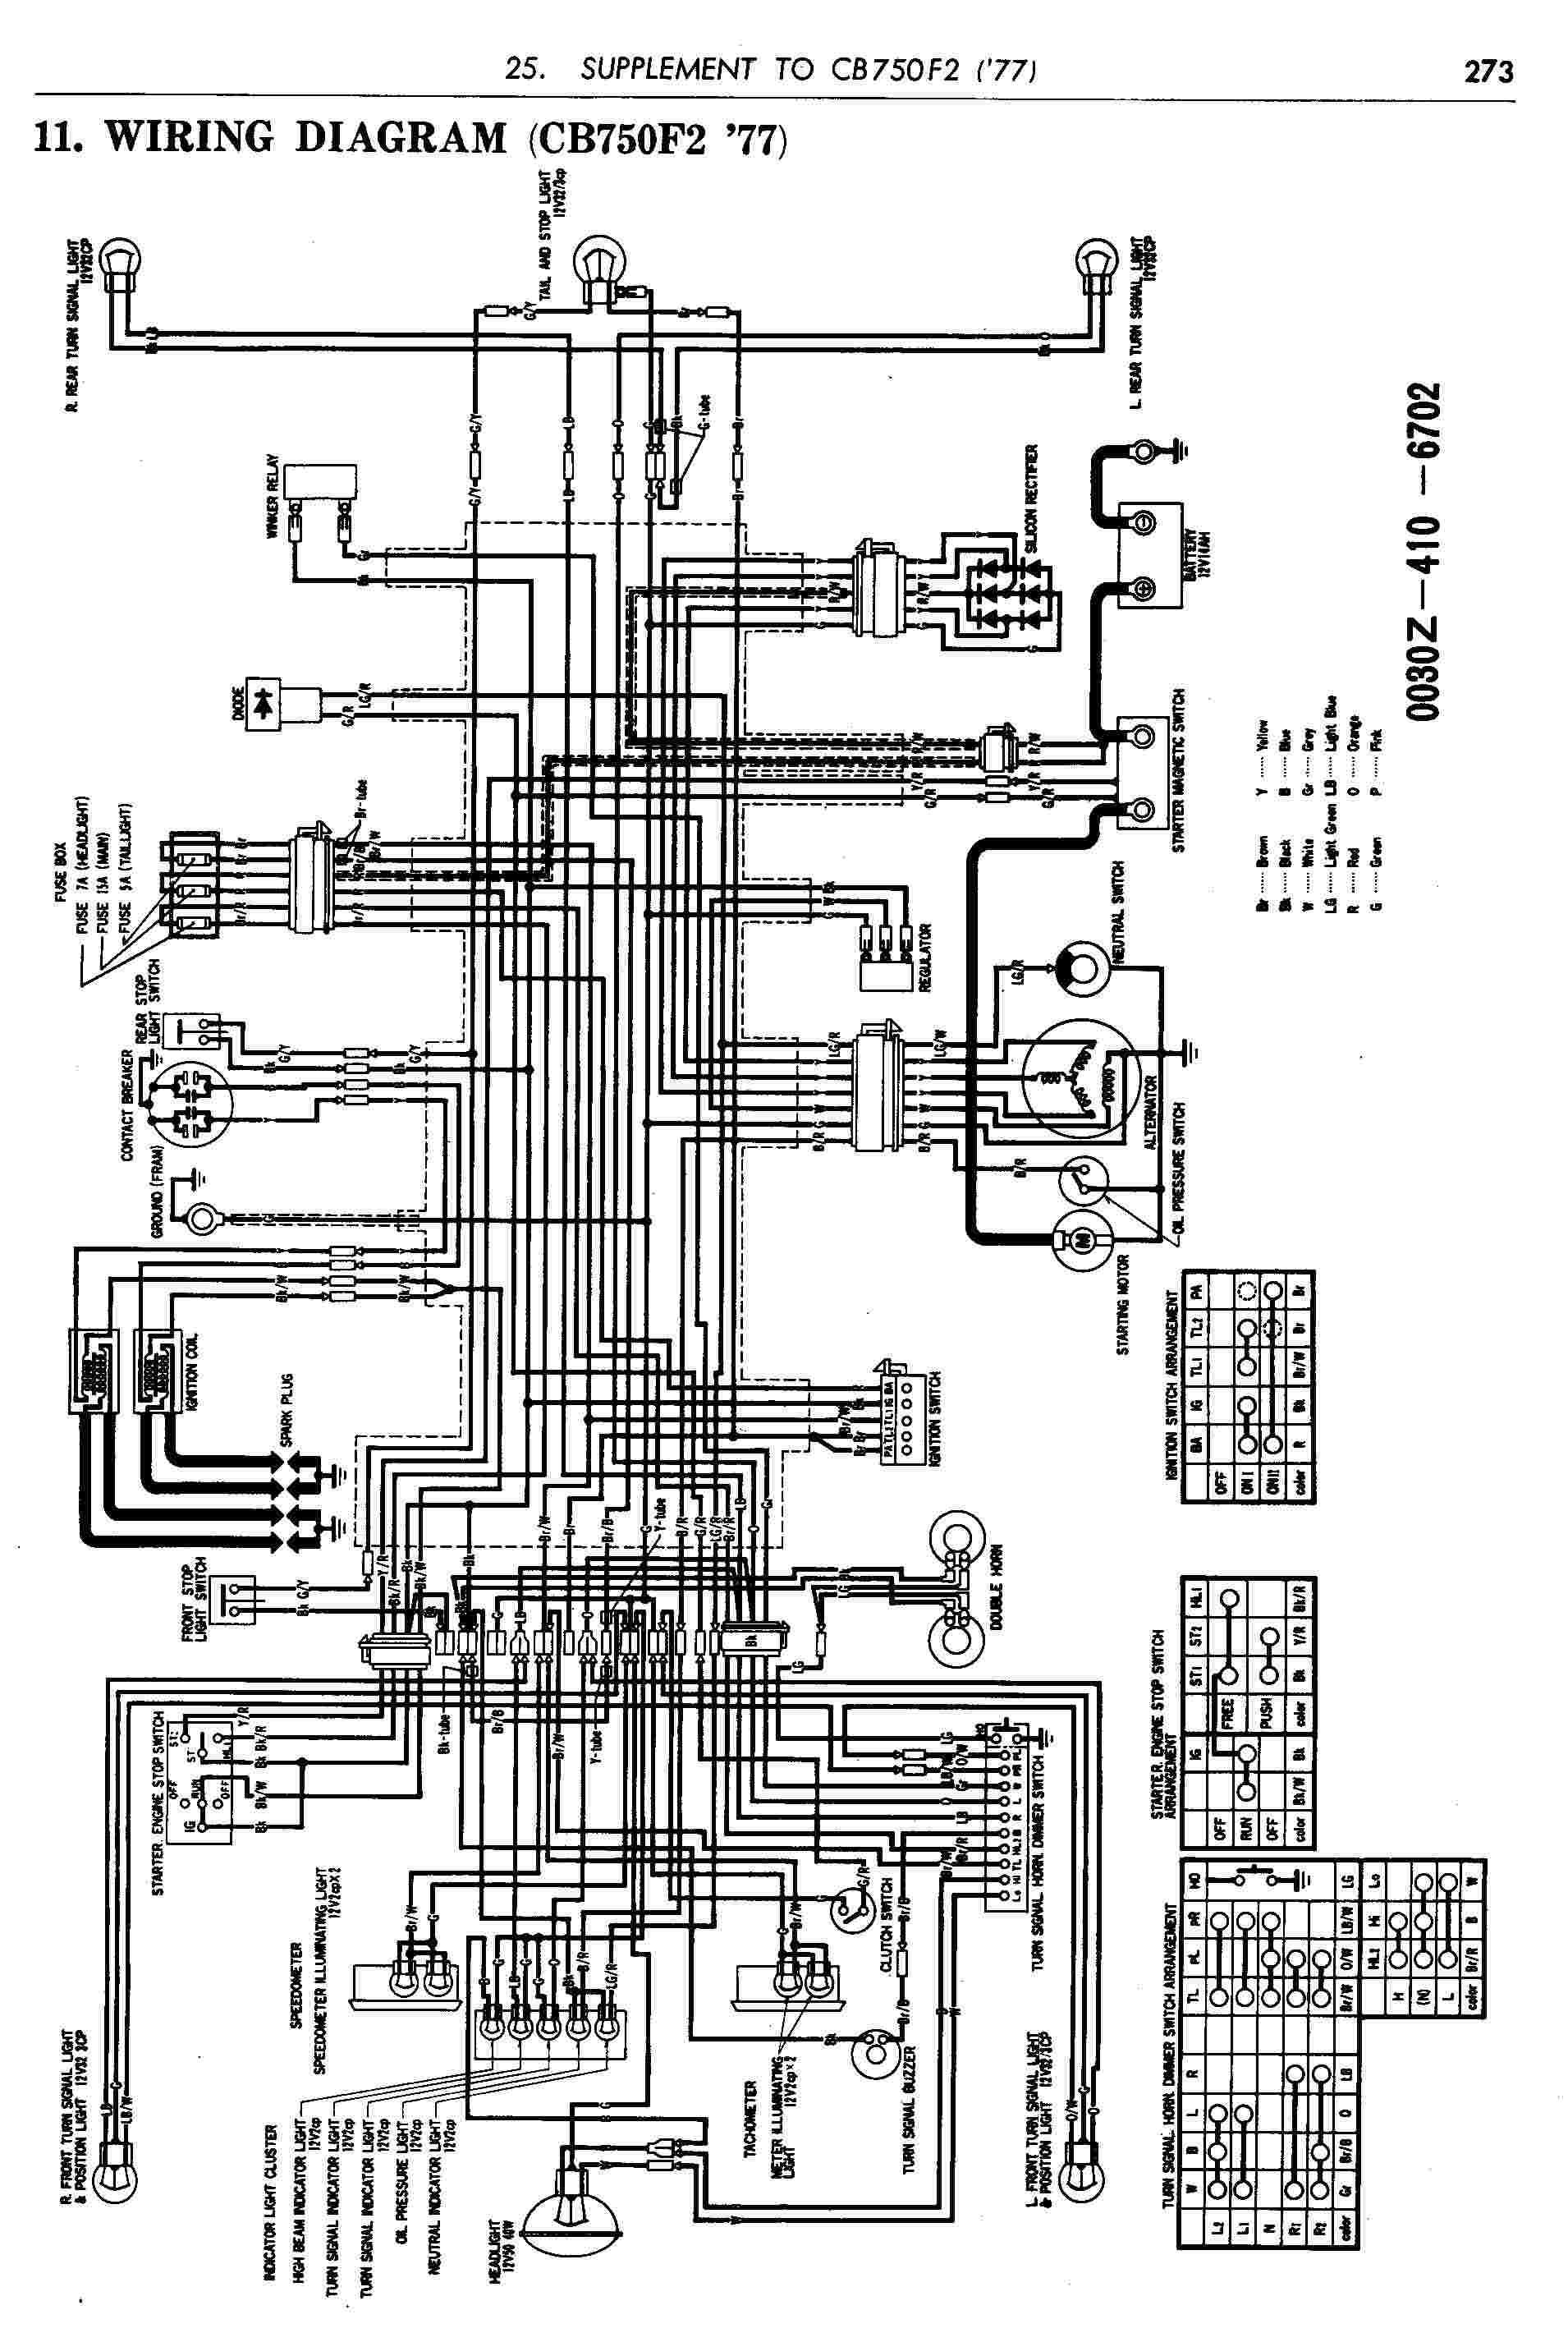 wiringF2 honda cb750k2 honda ctx 200 wiring diagram at alyssarenee.co